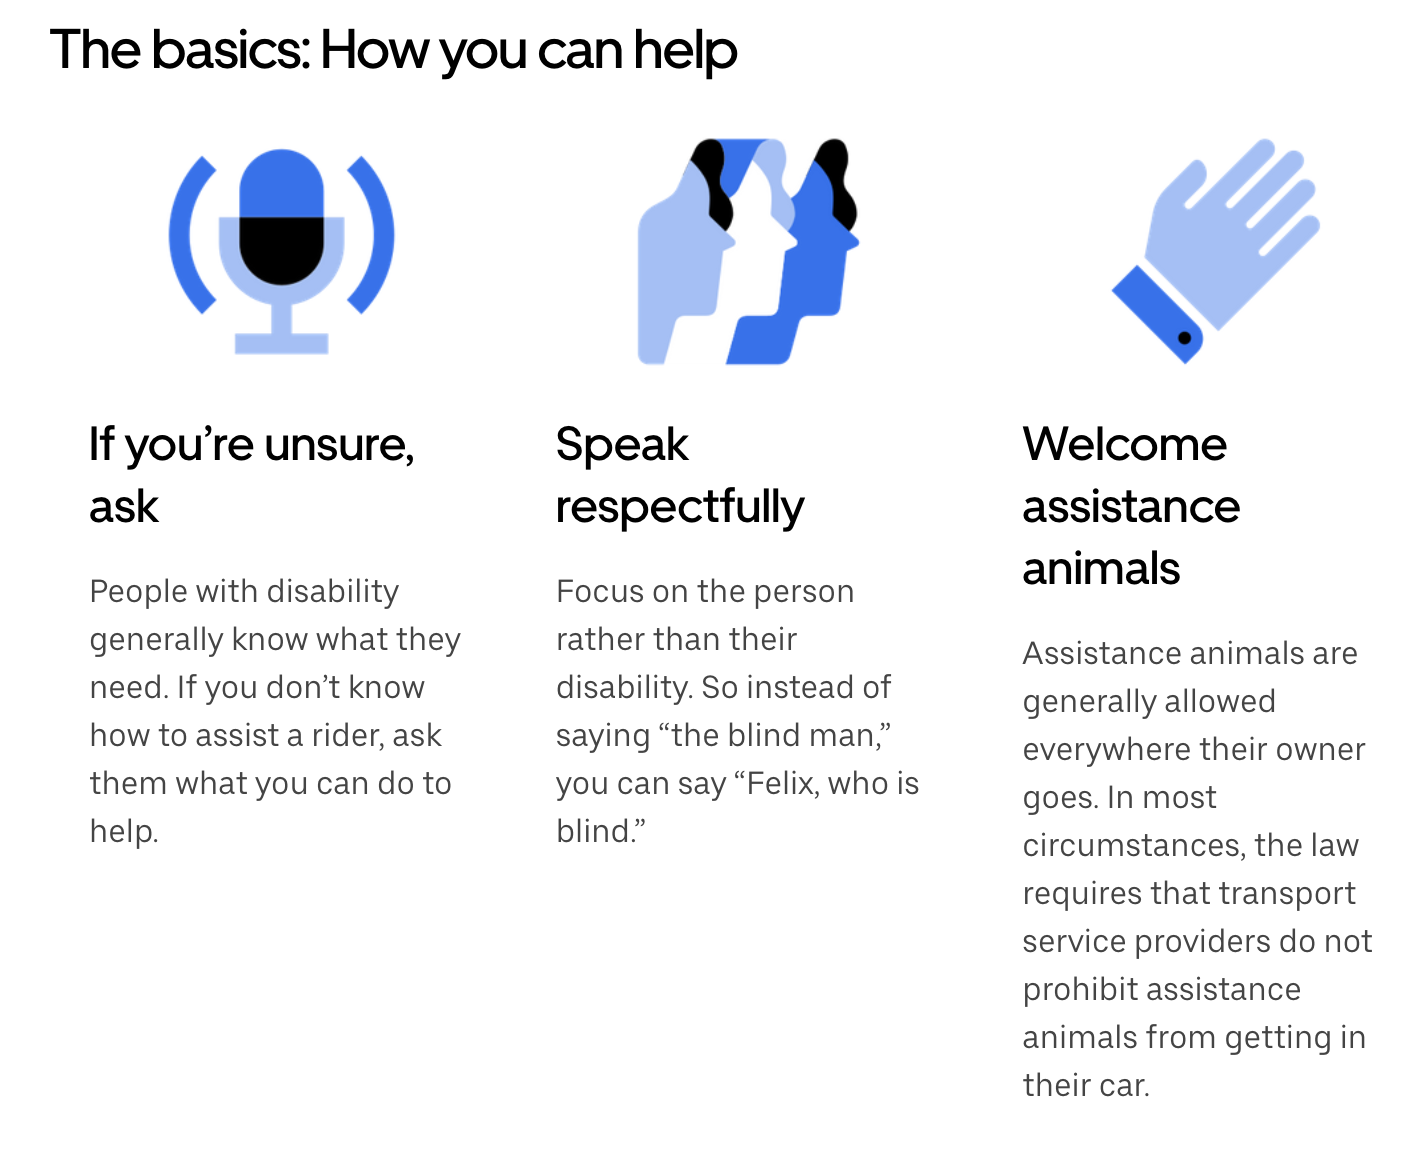 an image of Uber's advice to drivers who are assisting blind passengers